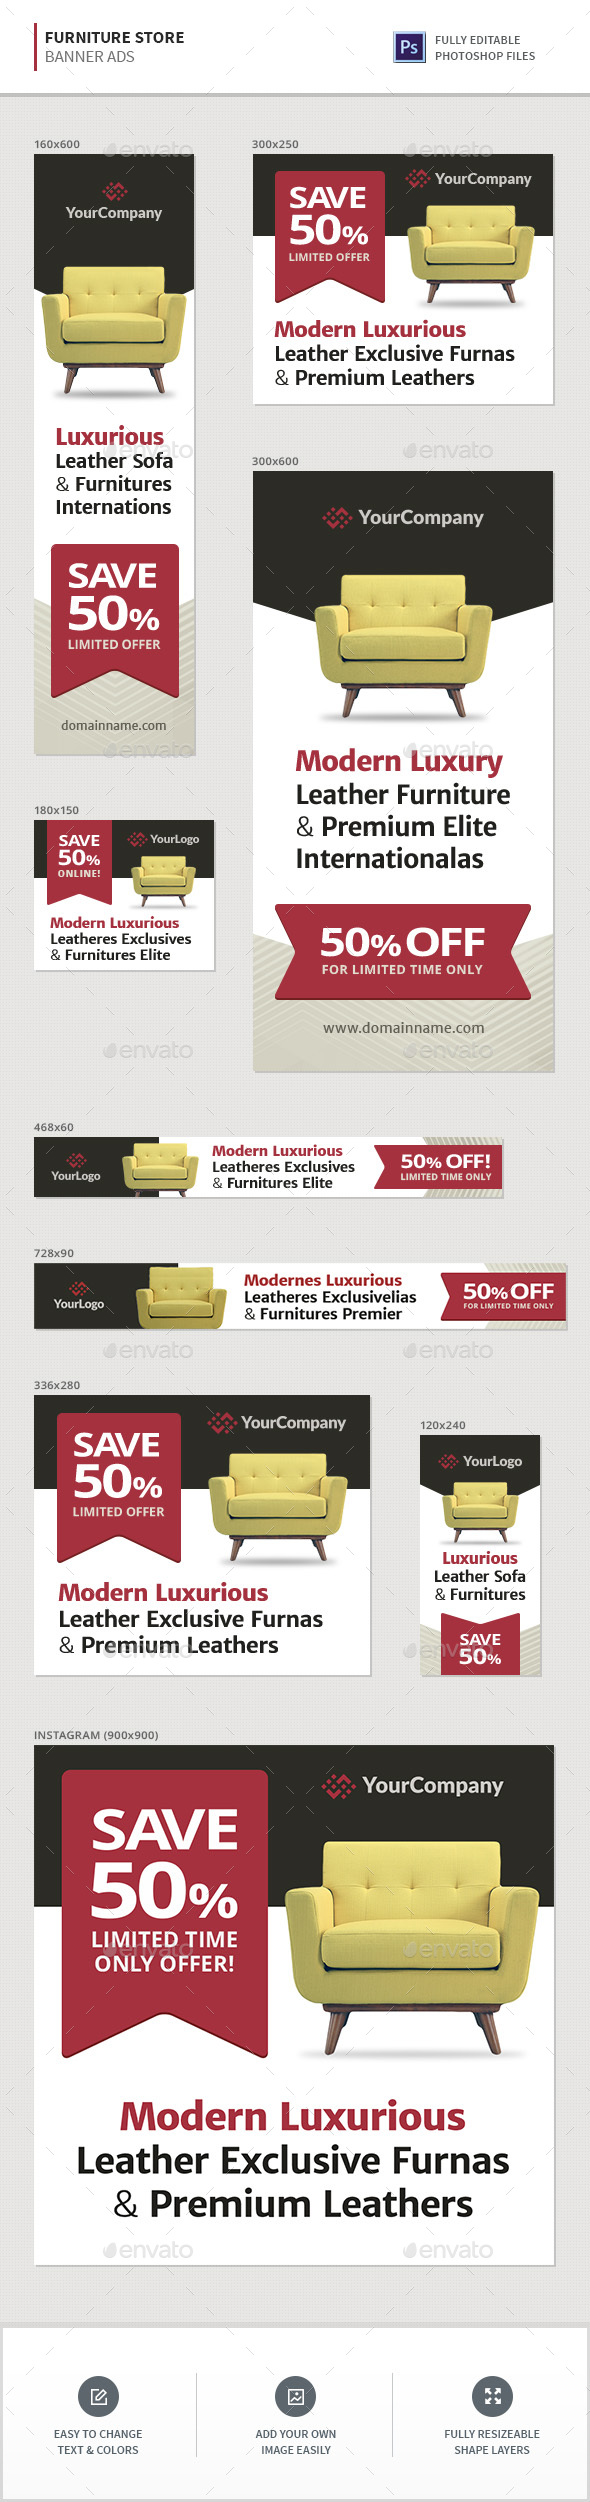 Furniture Store Banners - Banners & Ads Web Elements